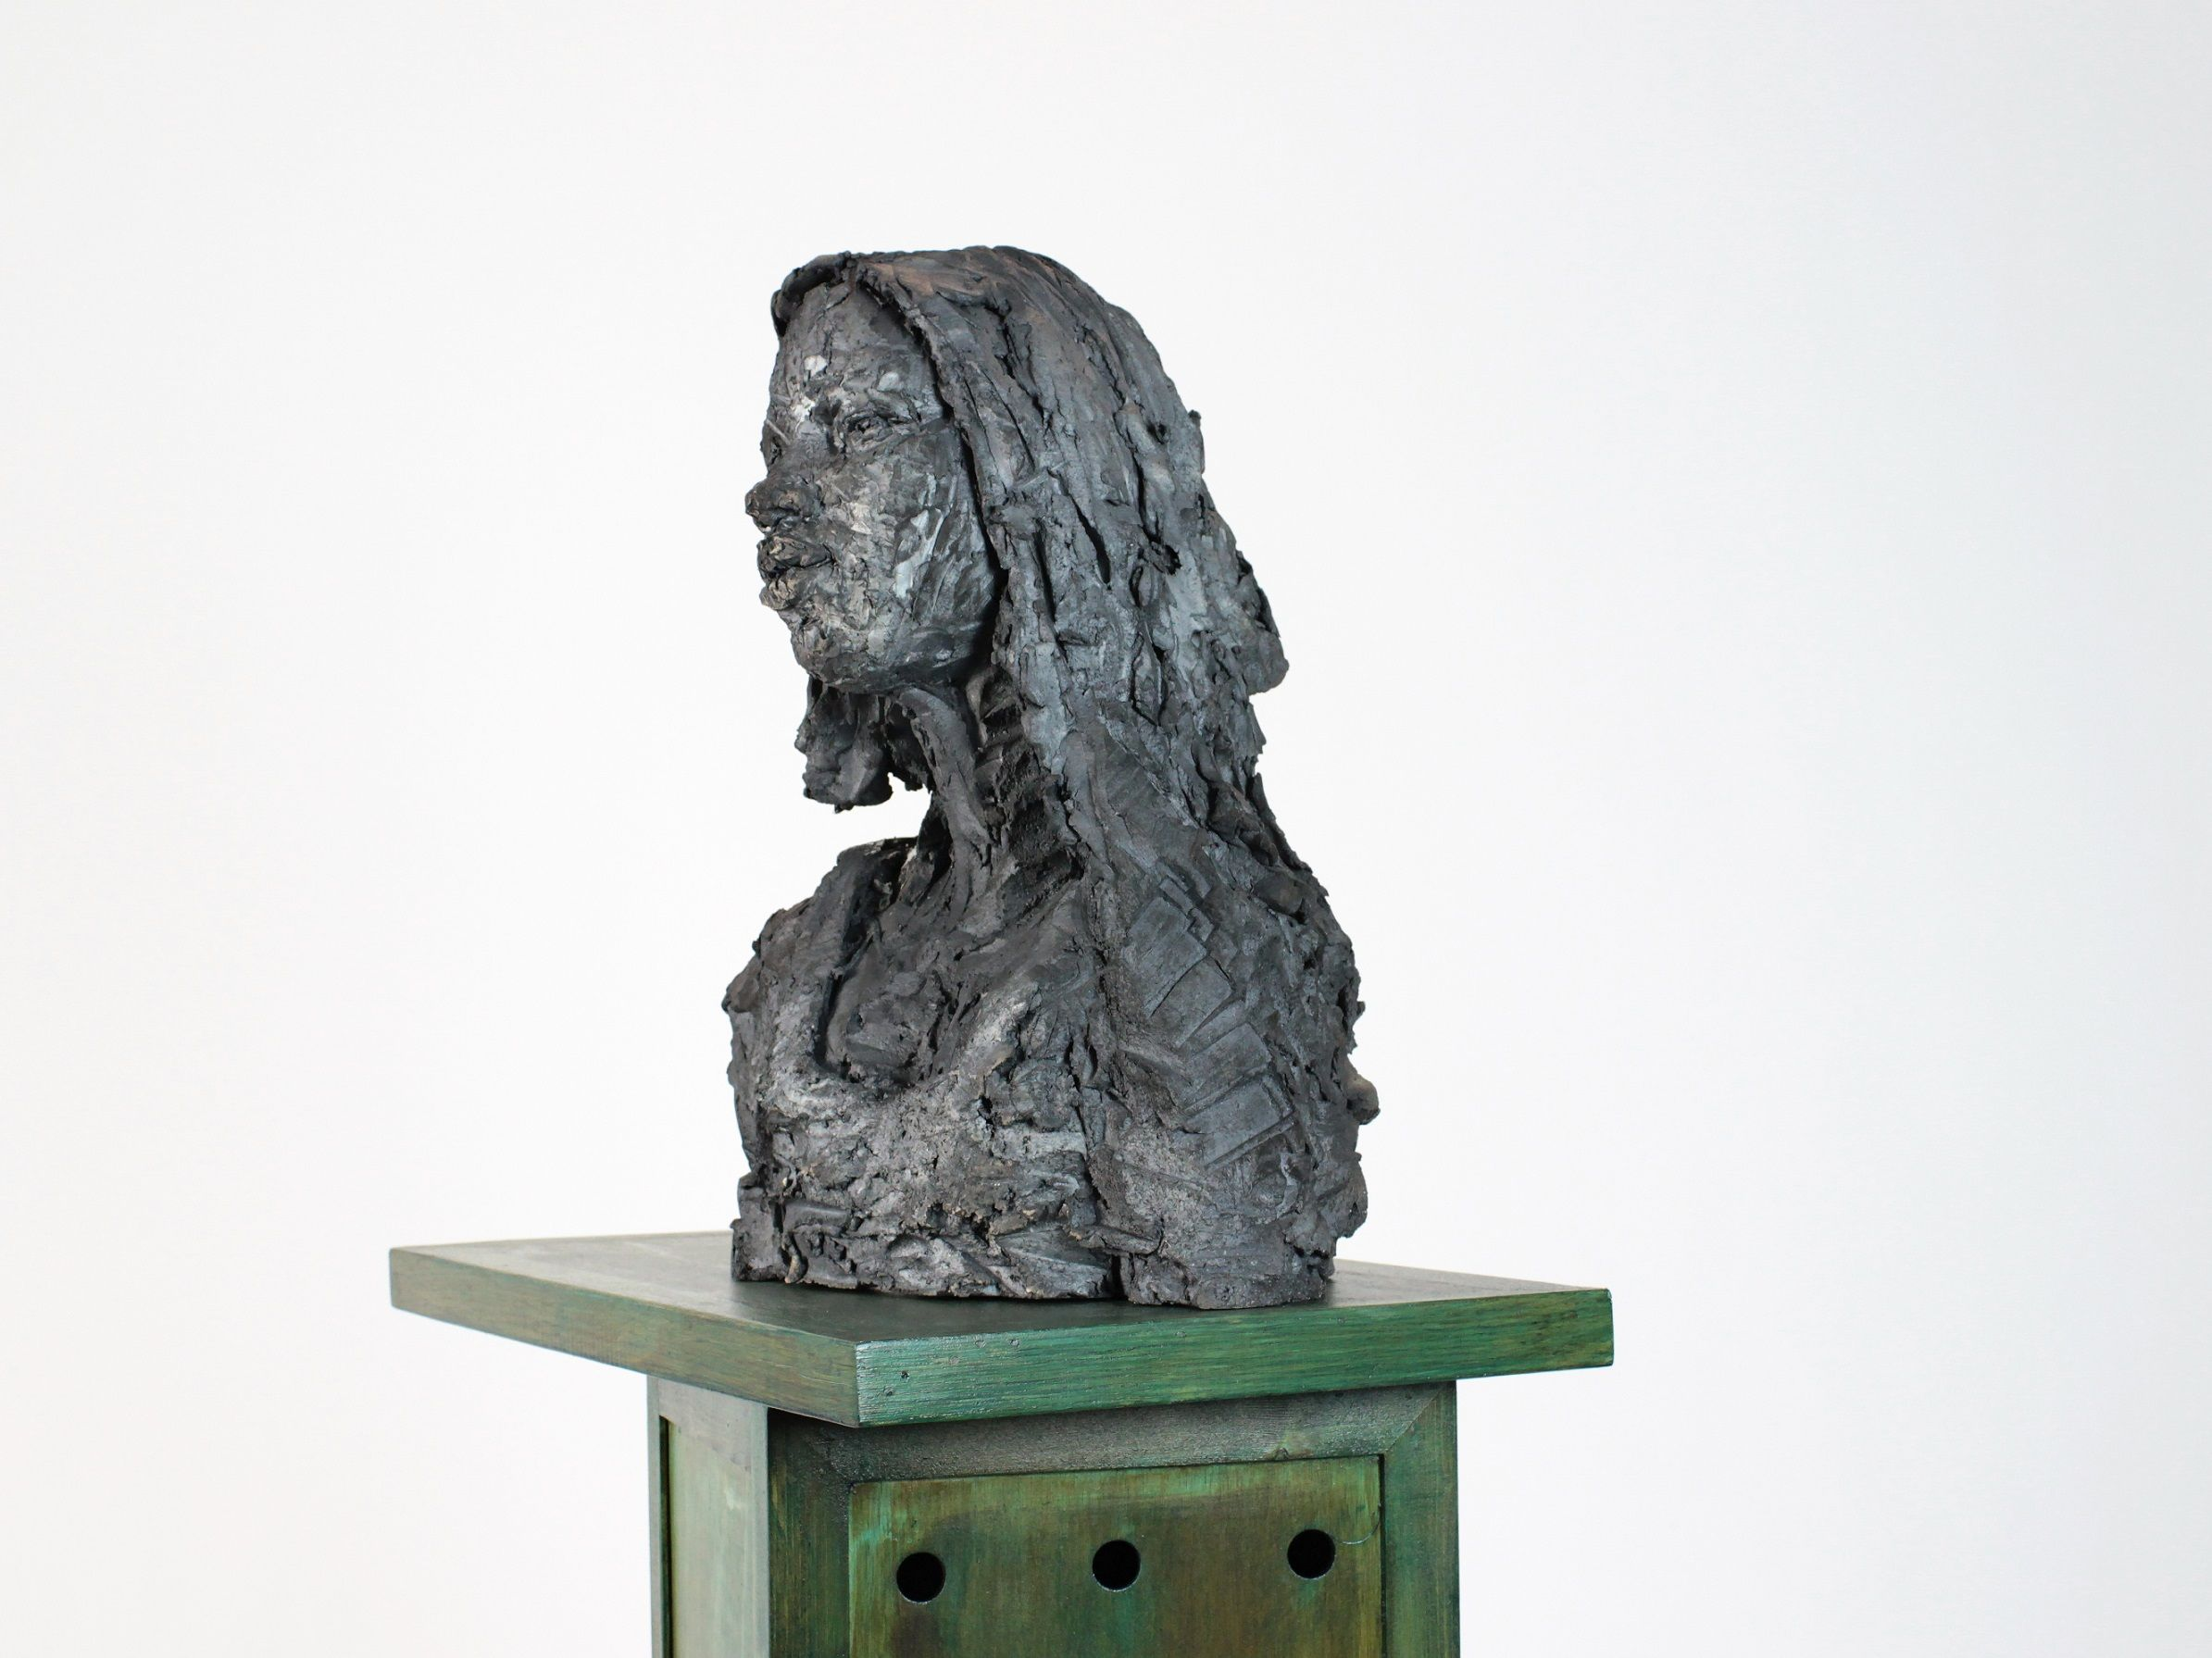 Solo (with Chloé),Cécile Raynal,Sculpture, detail 3